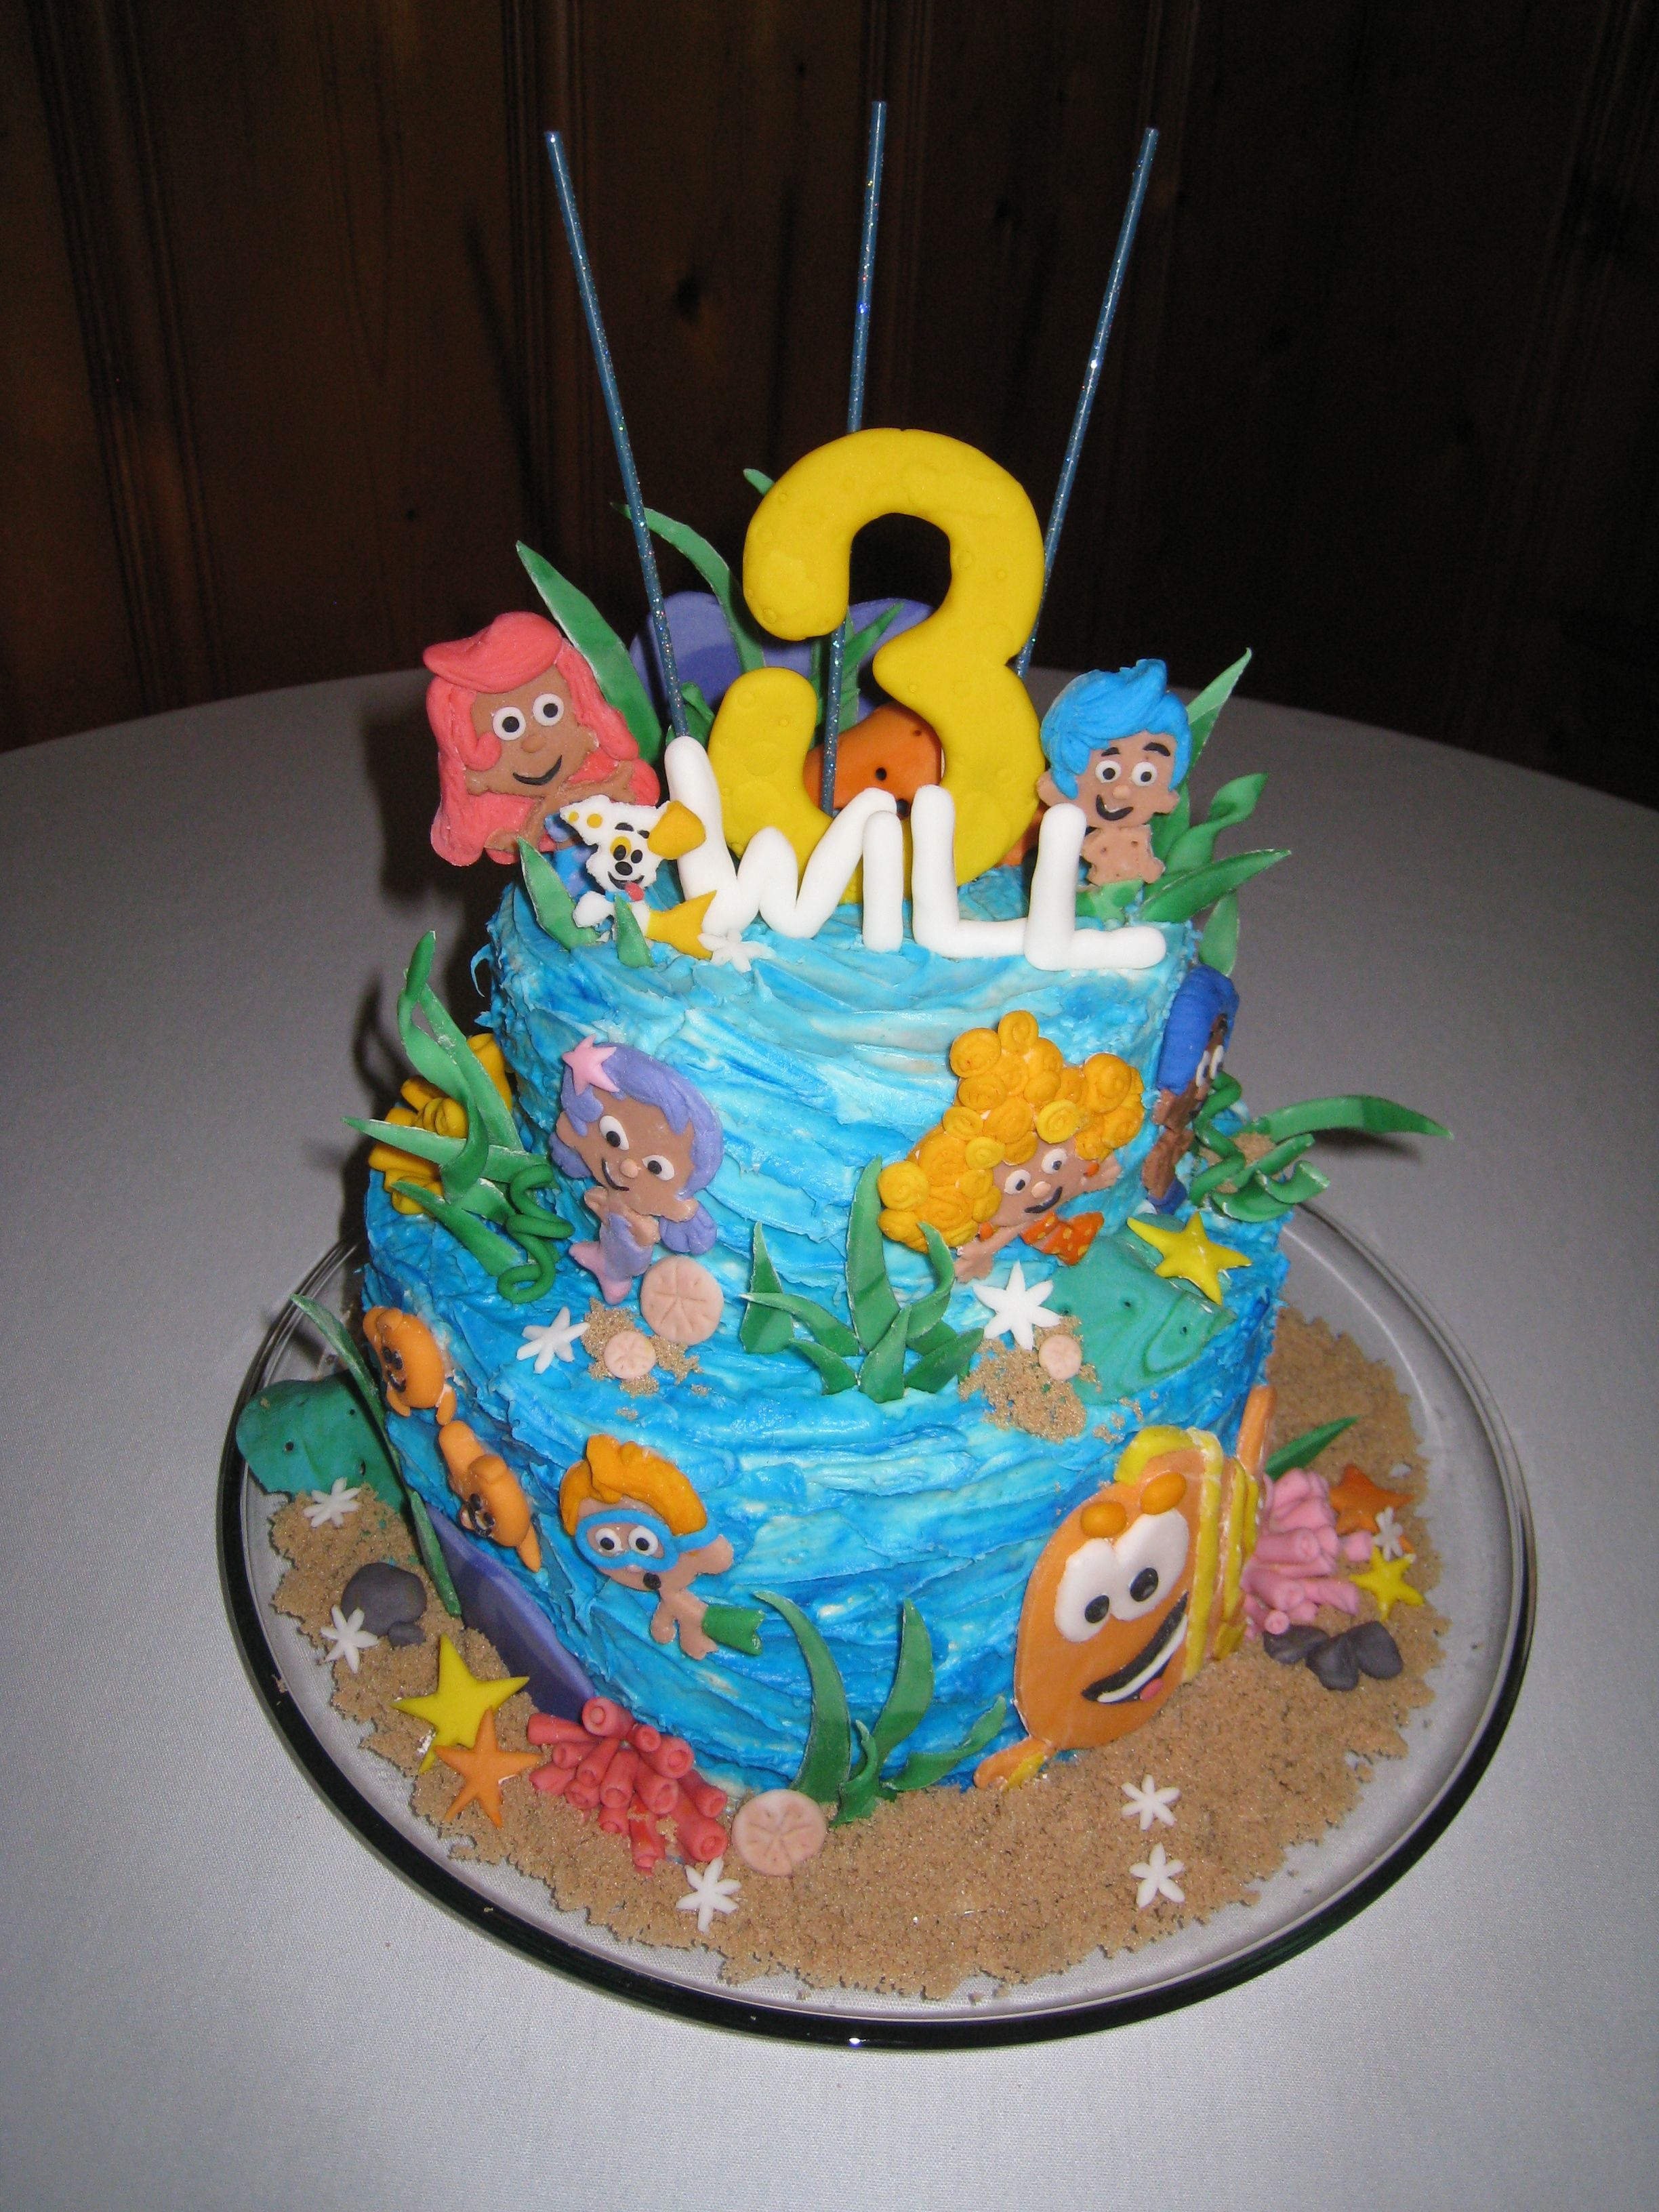 bubble guppies cake thank you for looking at my cake it was a